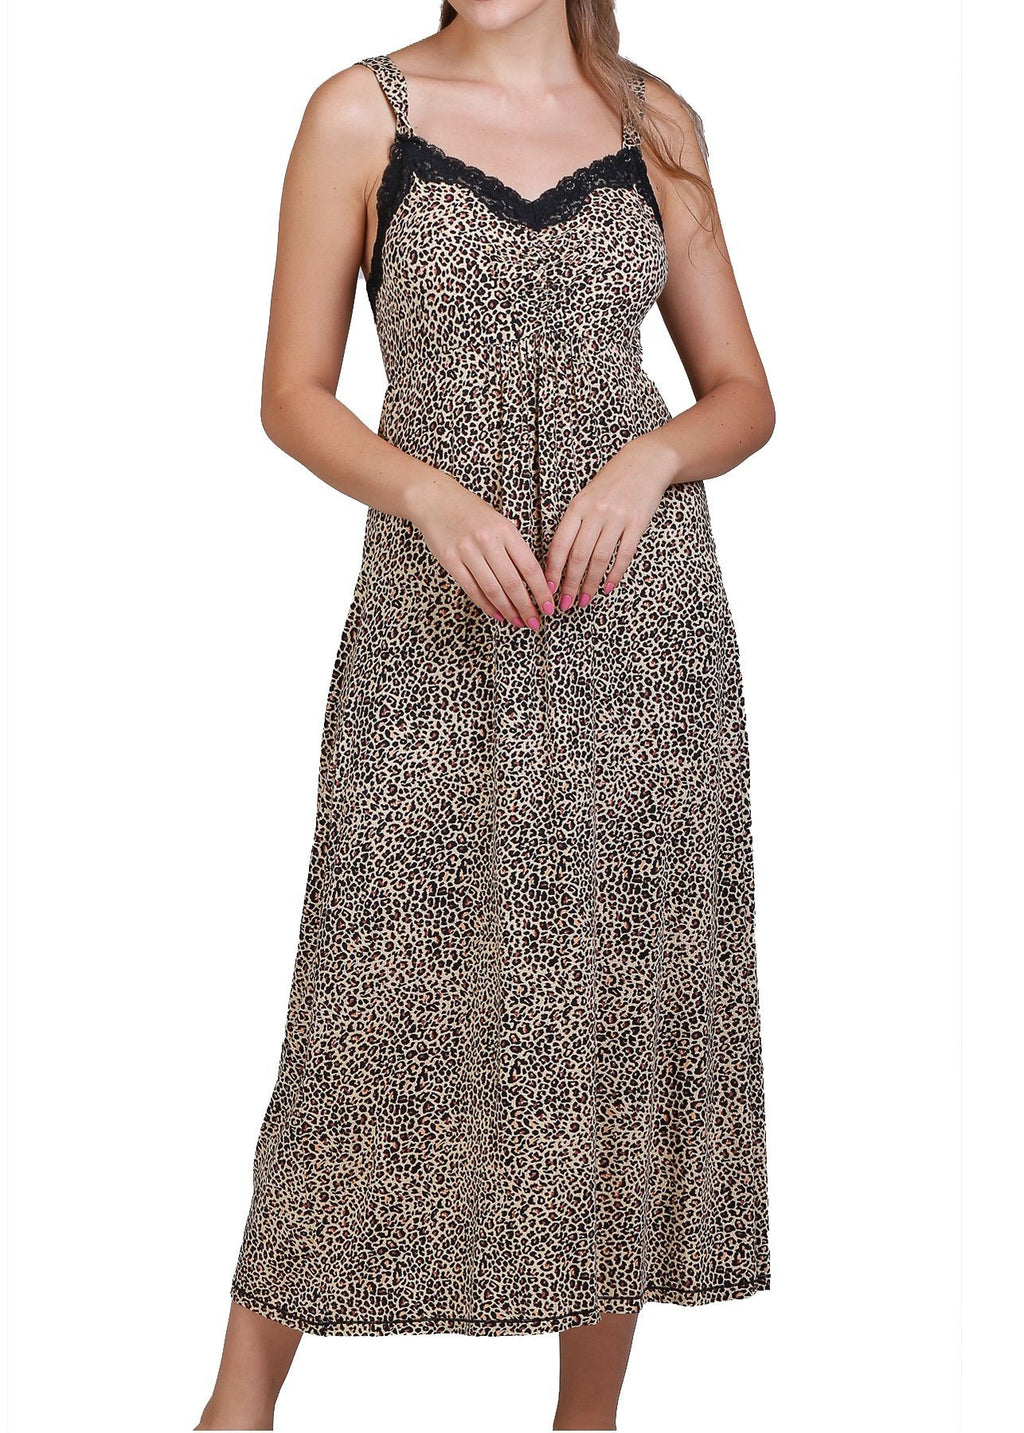 Leopard Print Nightgown Mystique Intimates